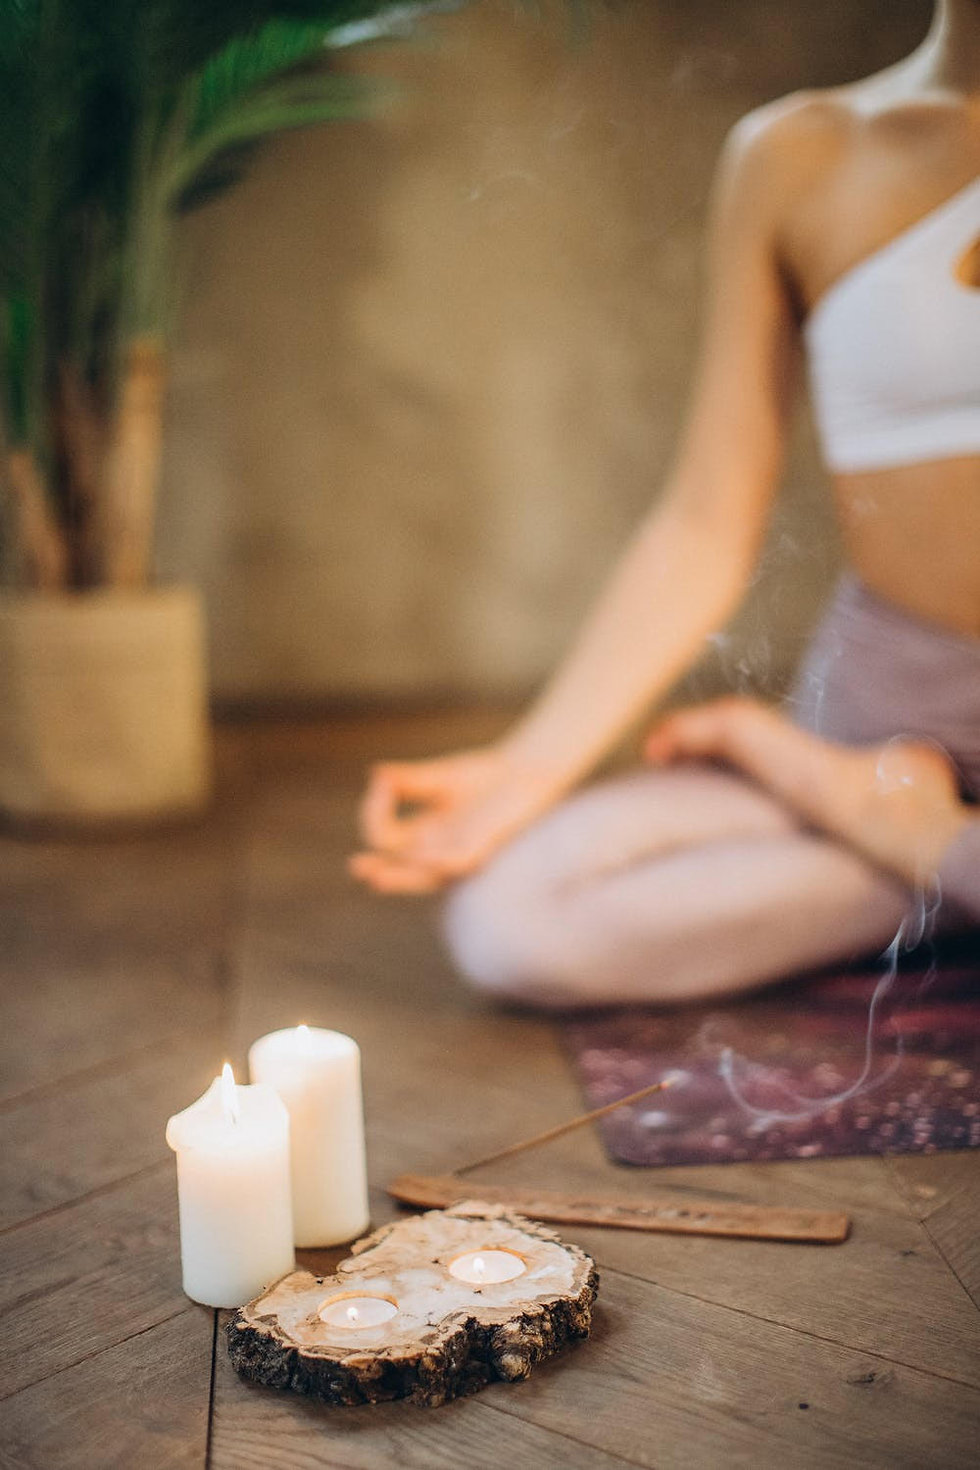 Detail of burning candles with yoga student sitting cross-legged in the background